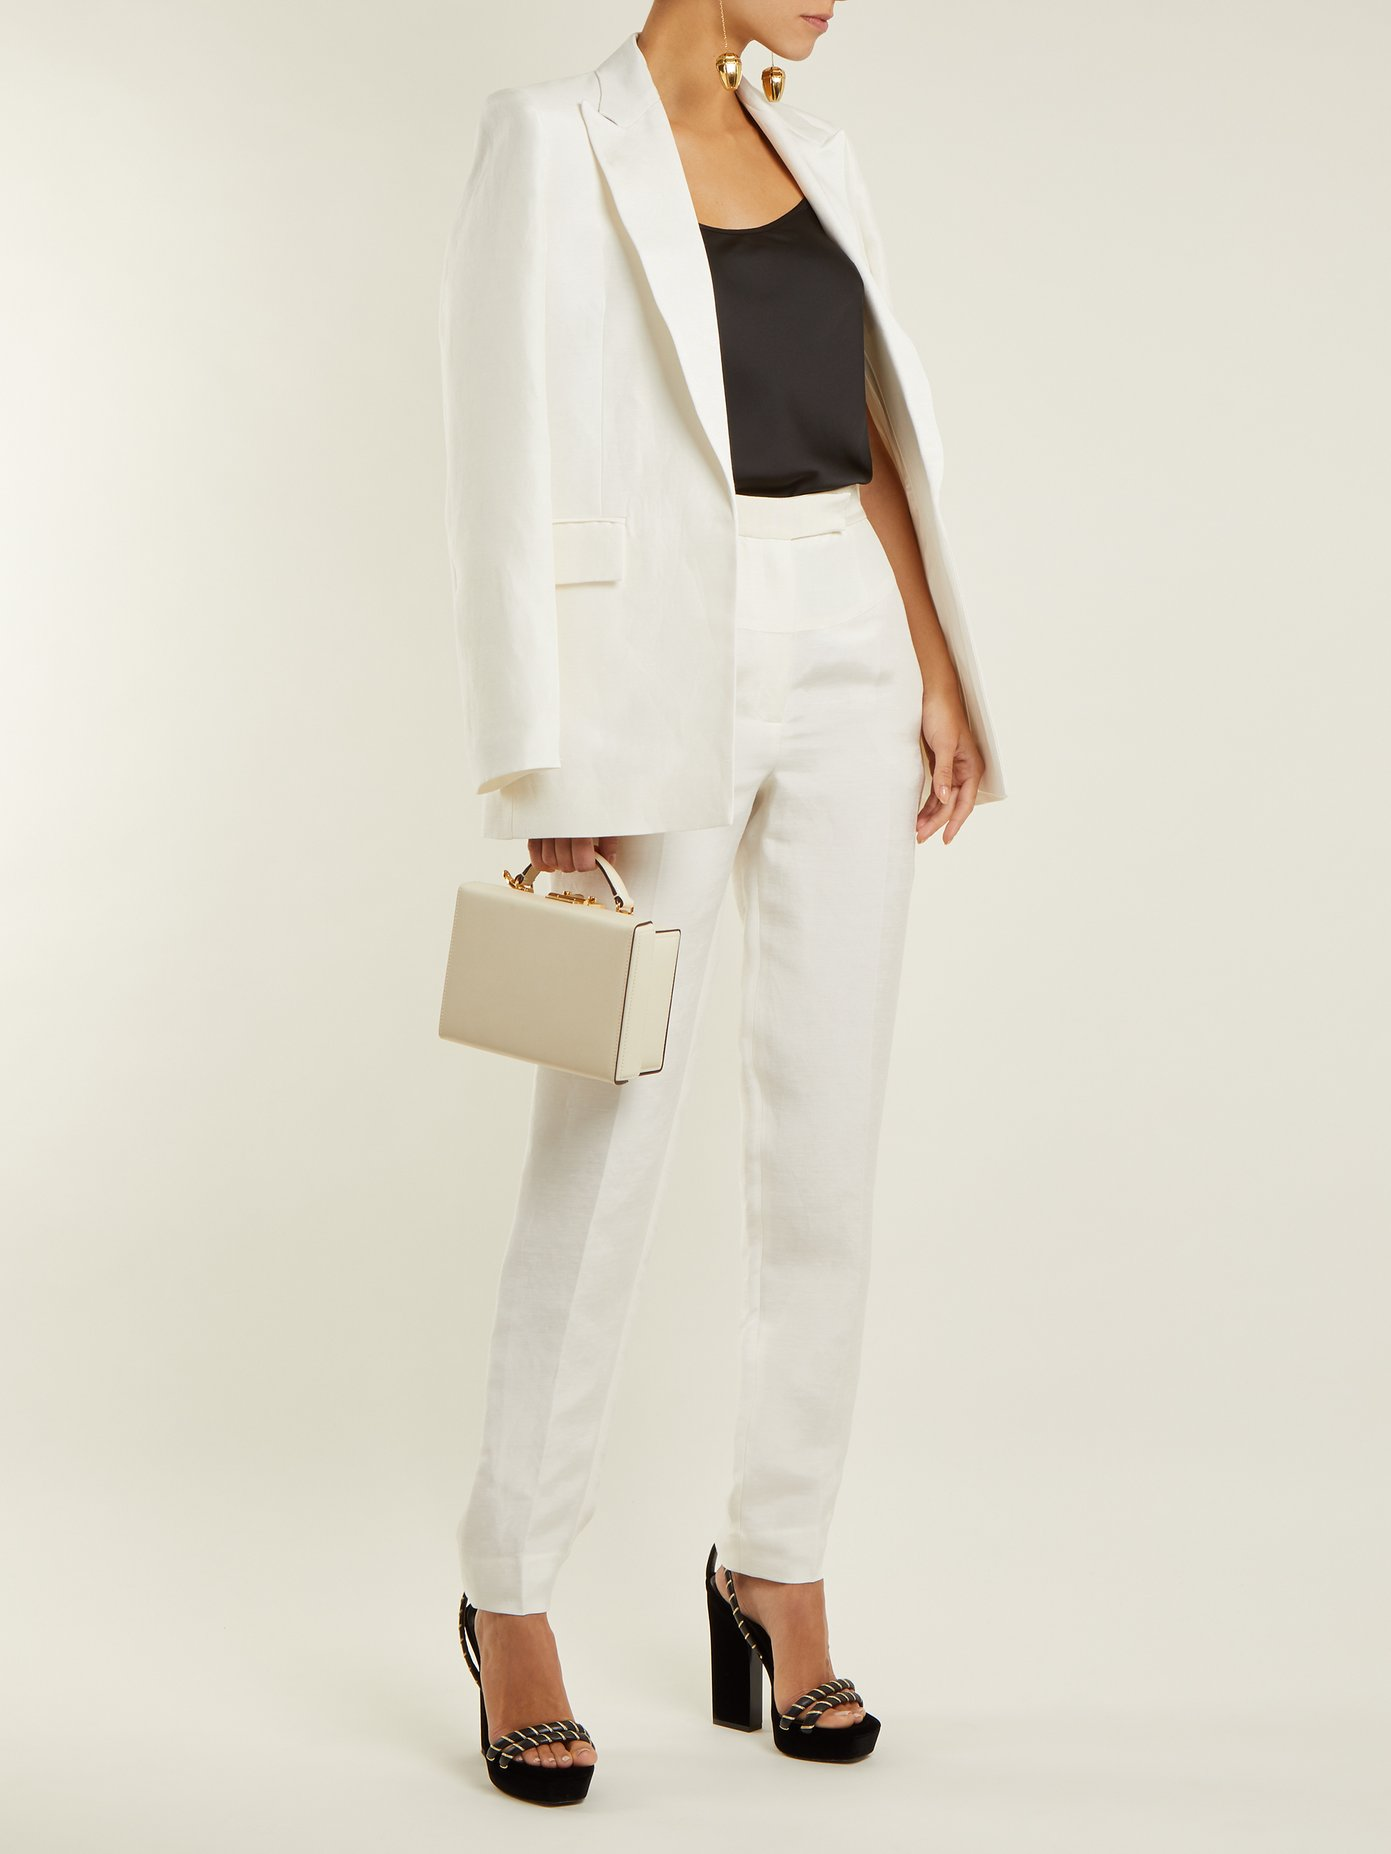 outfit_1200573_1.jpg